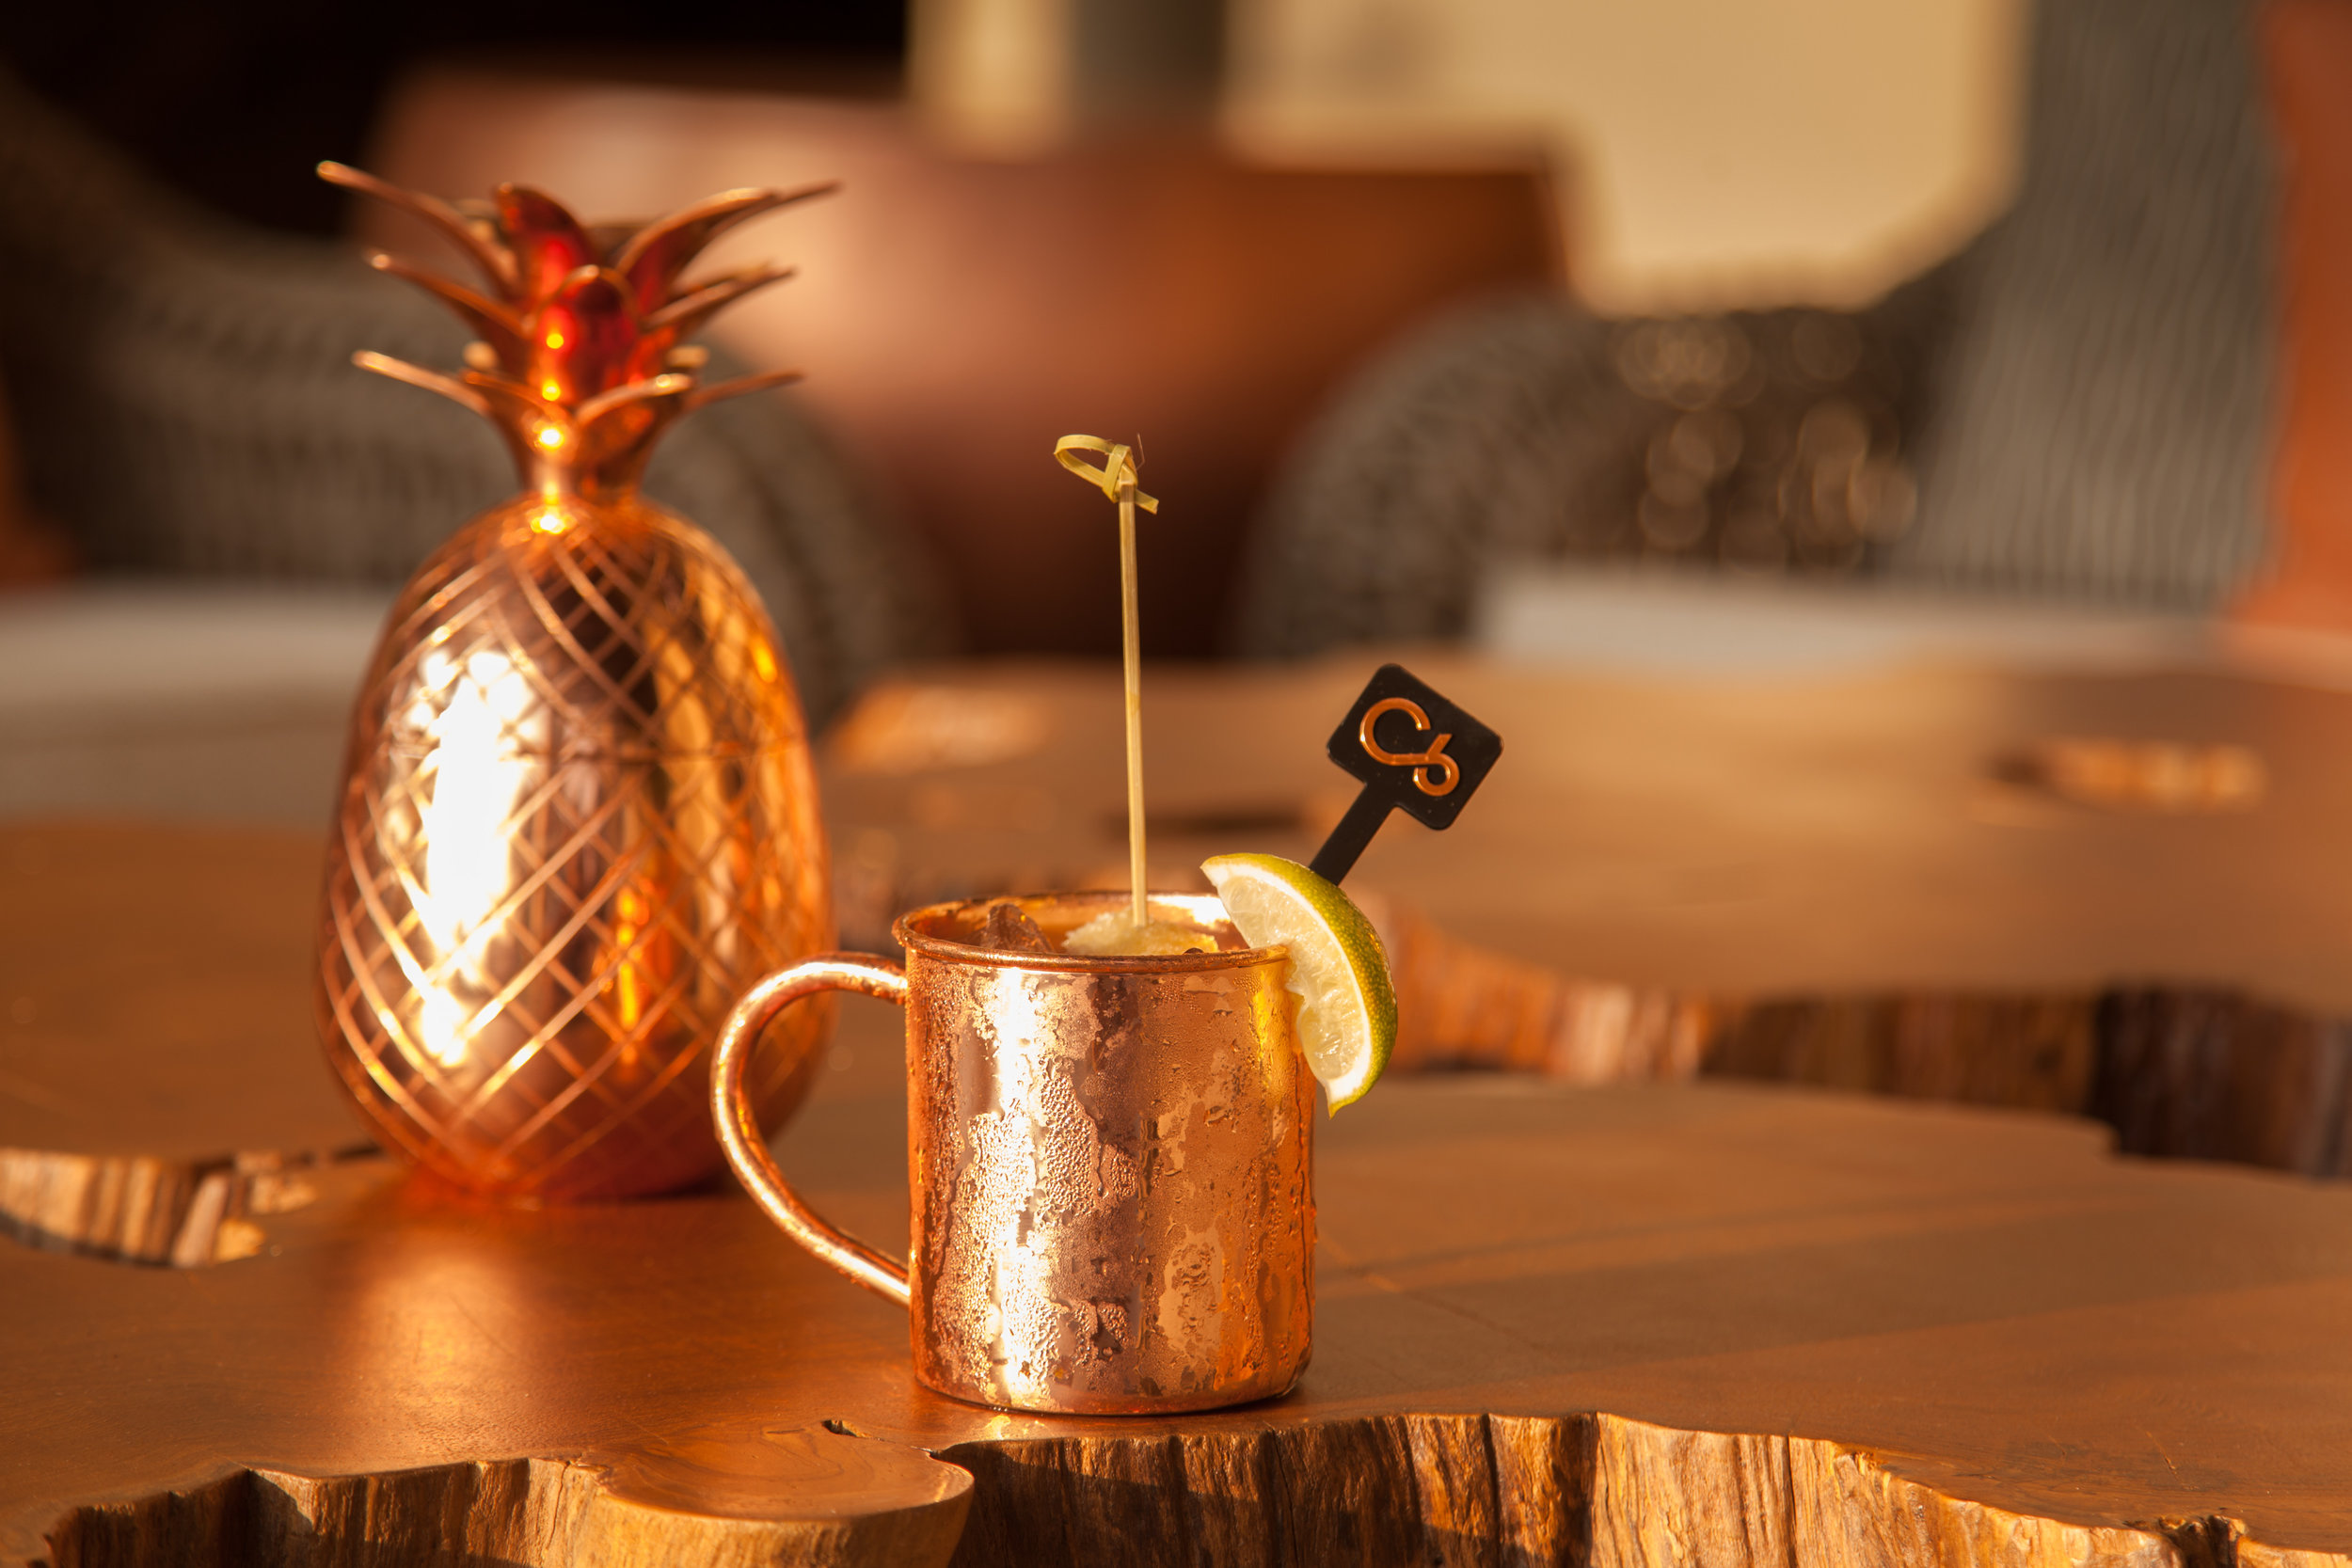 Enjoy the Mauna Kea Mule at the Copper Bar and enjoy the lovely Hapuna Beach sunset.